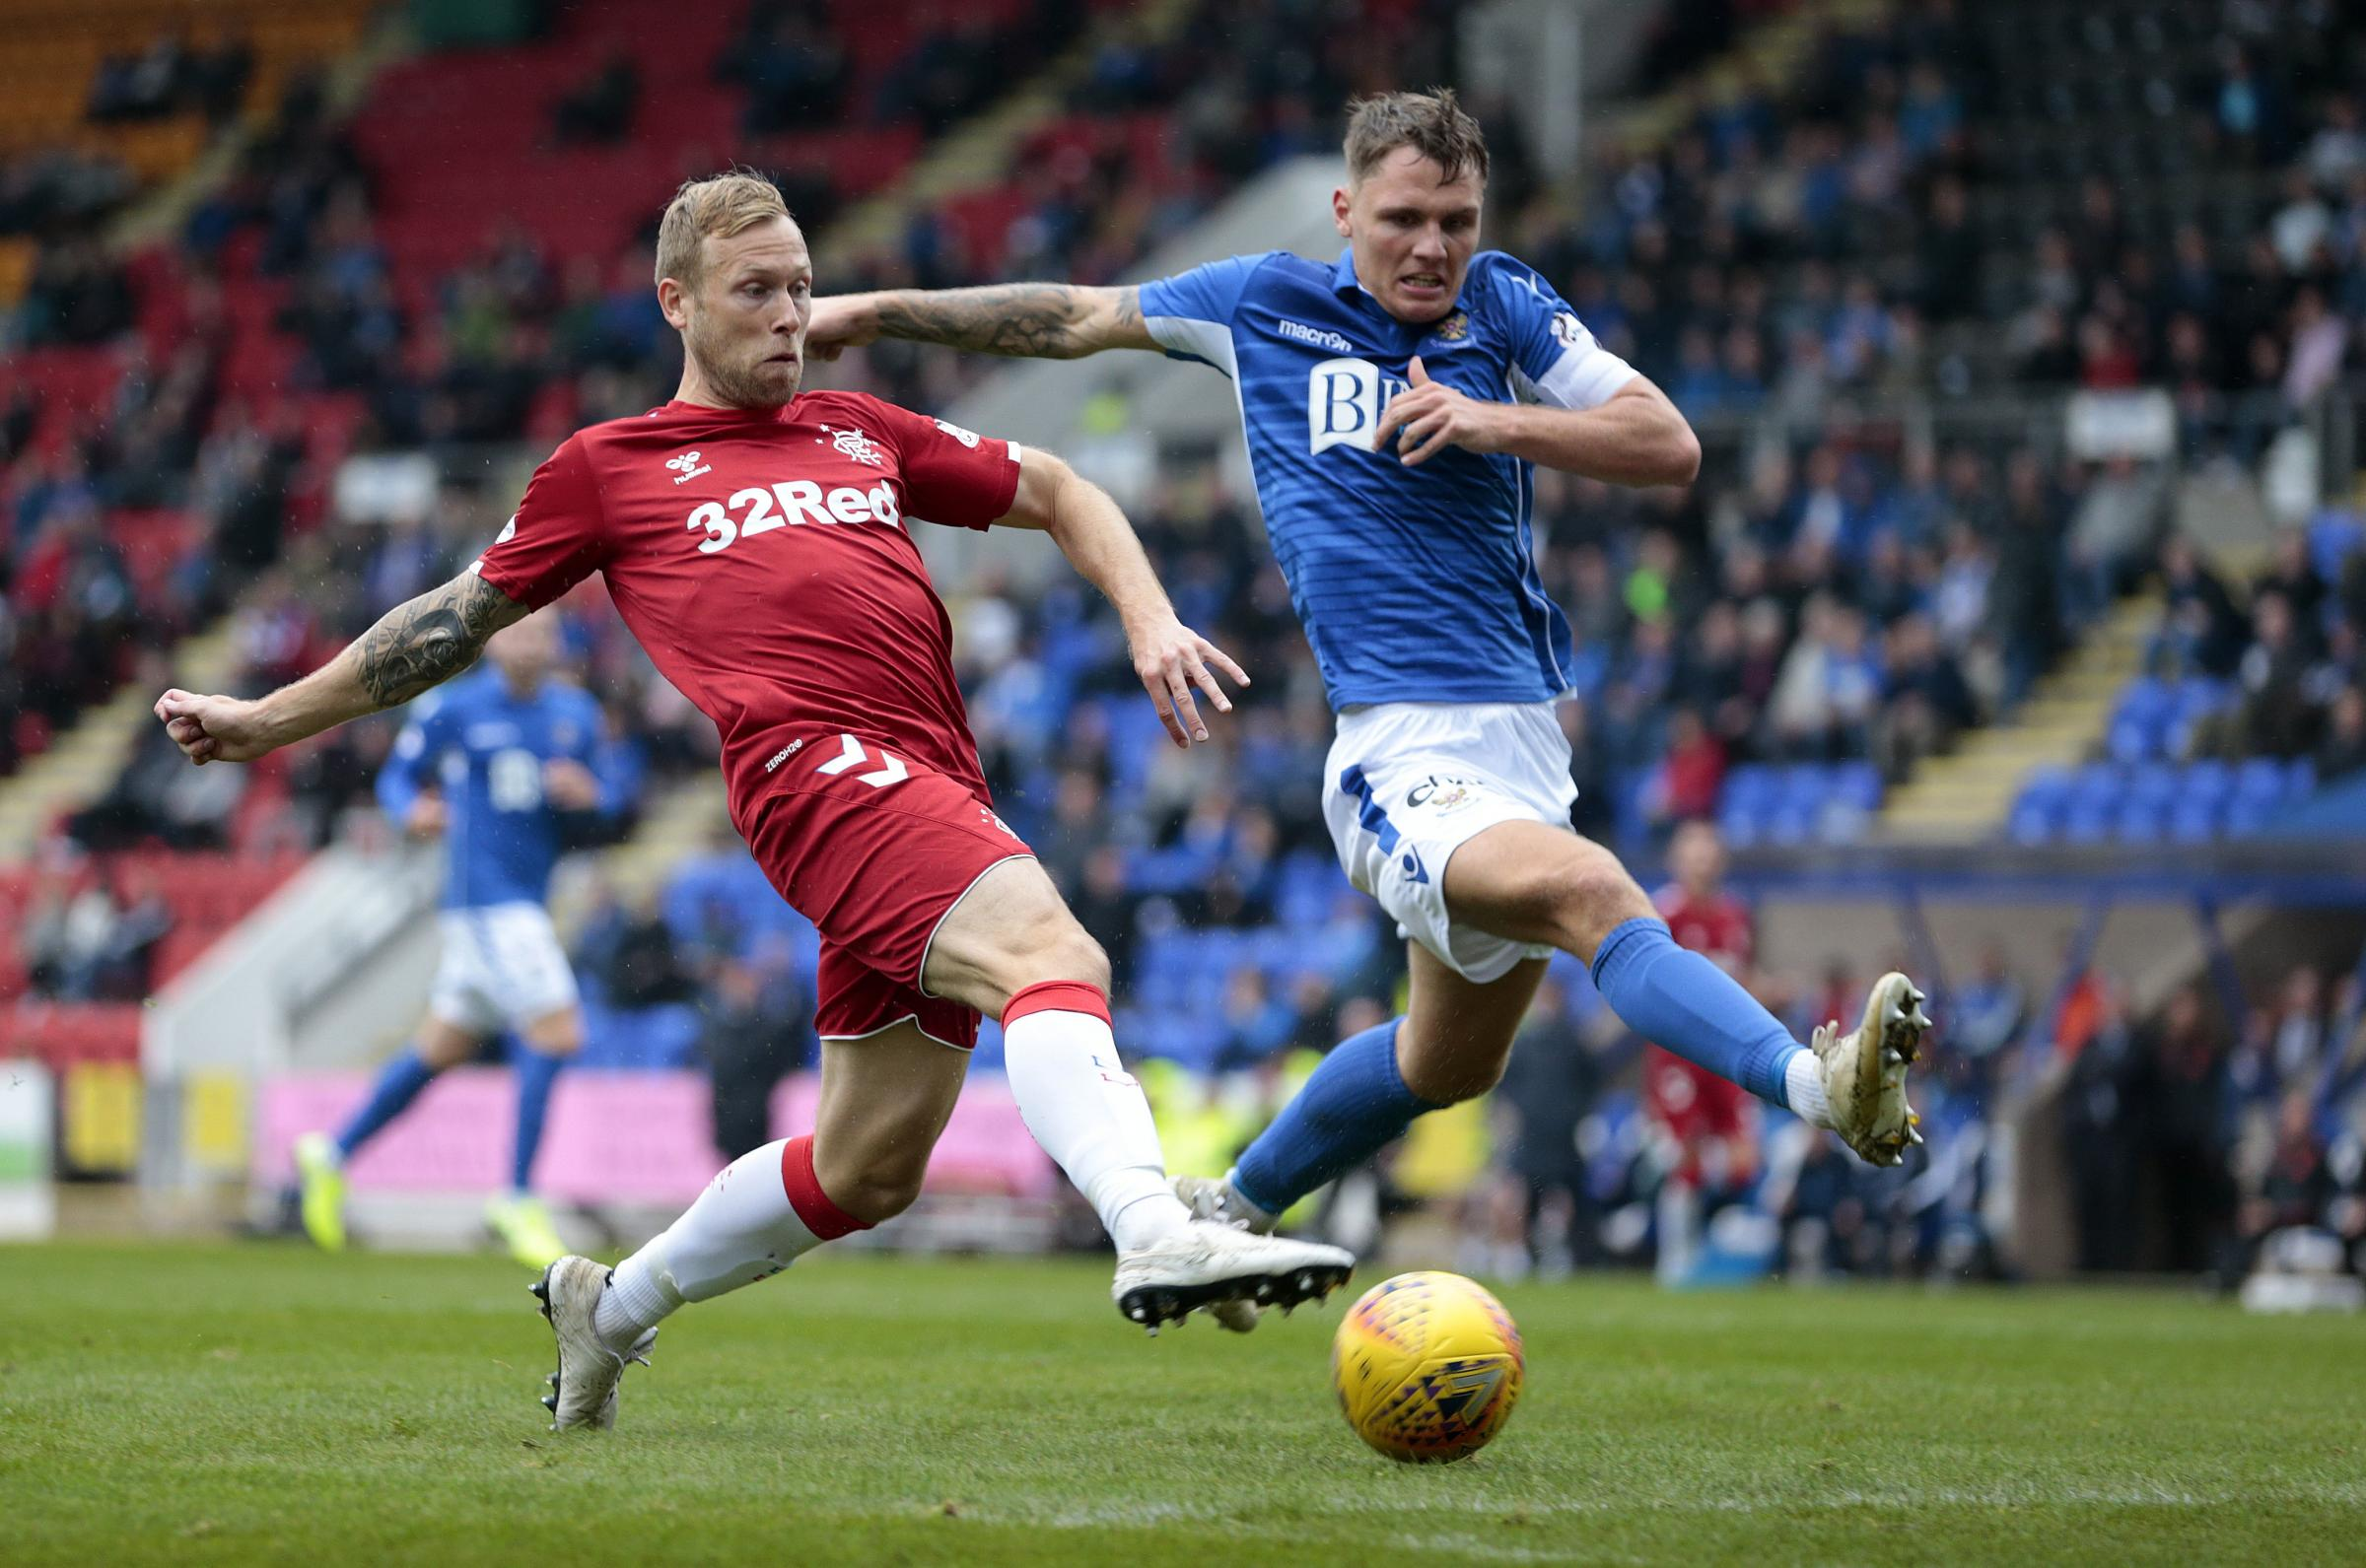 St Johnstone vs Rangers: Kick-off time rescheduled for Ibrox side's visit to McDiarmid Park to accommodate Sky Sports